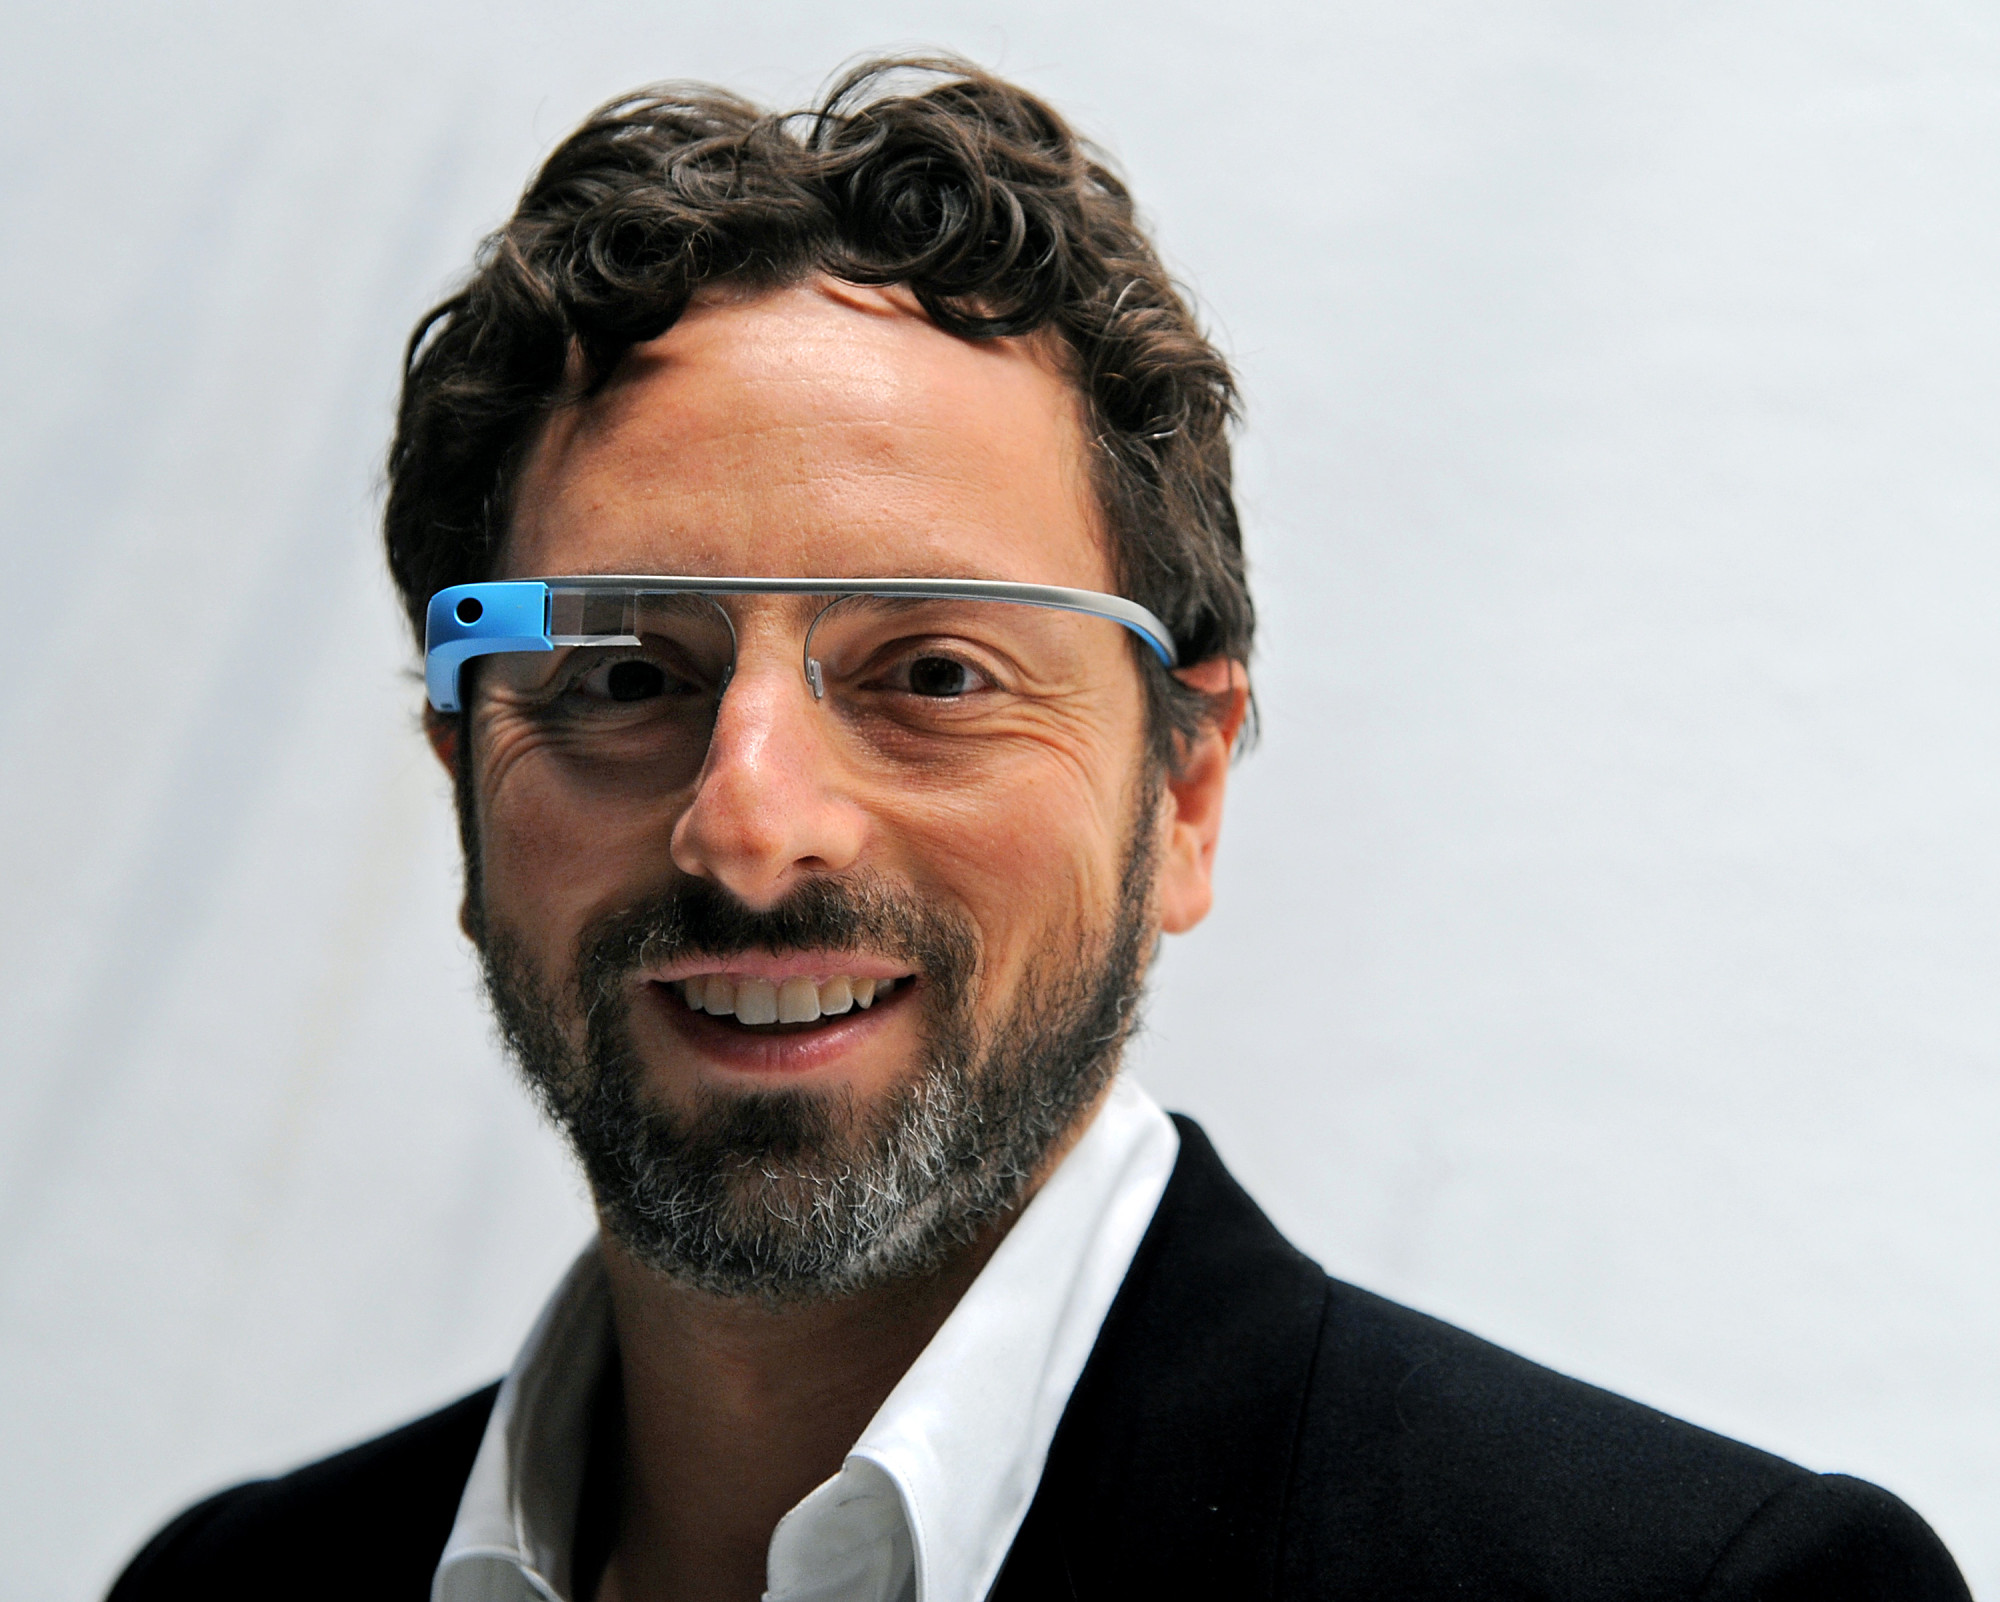 Google's Brin Wears Google Glasses During Fashion Week